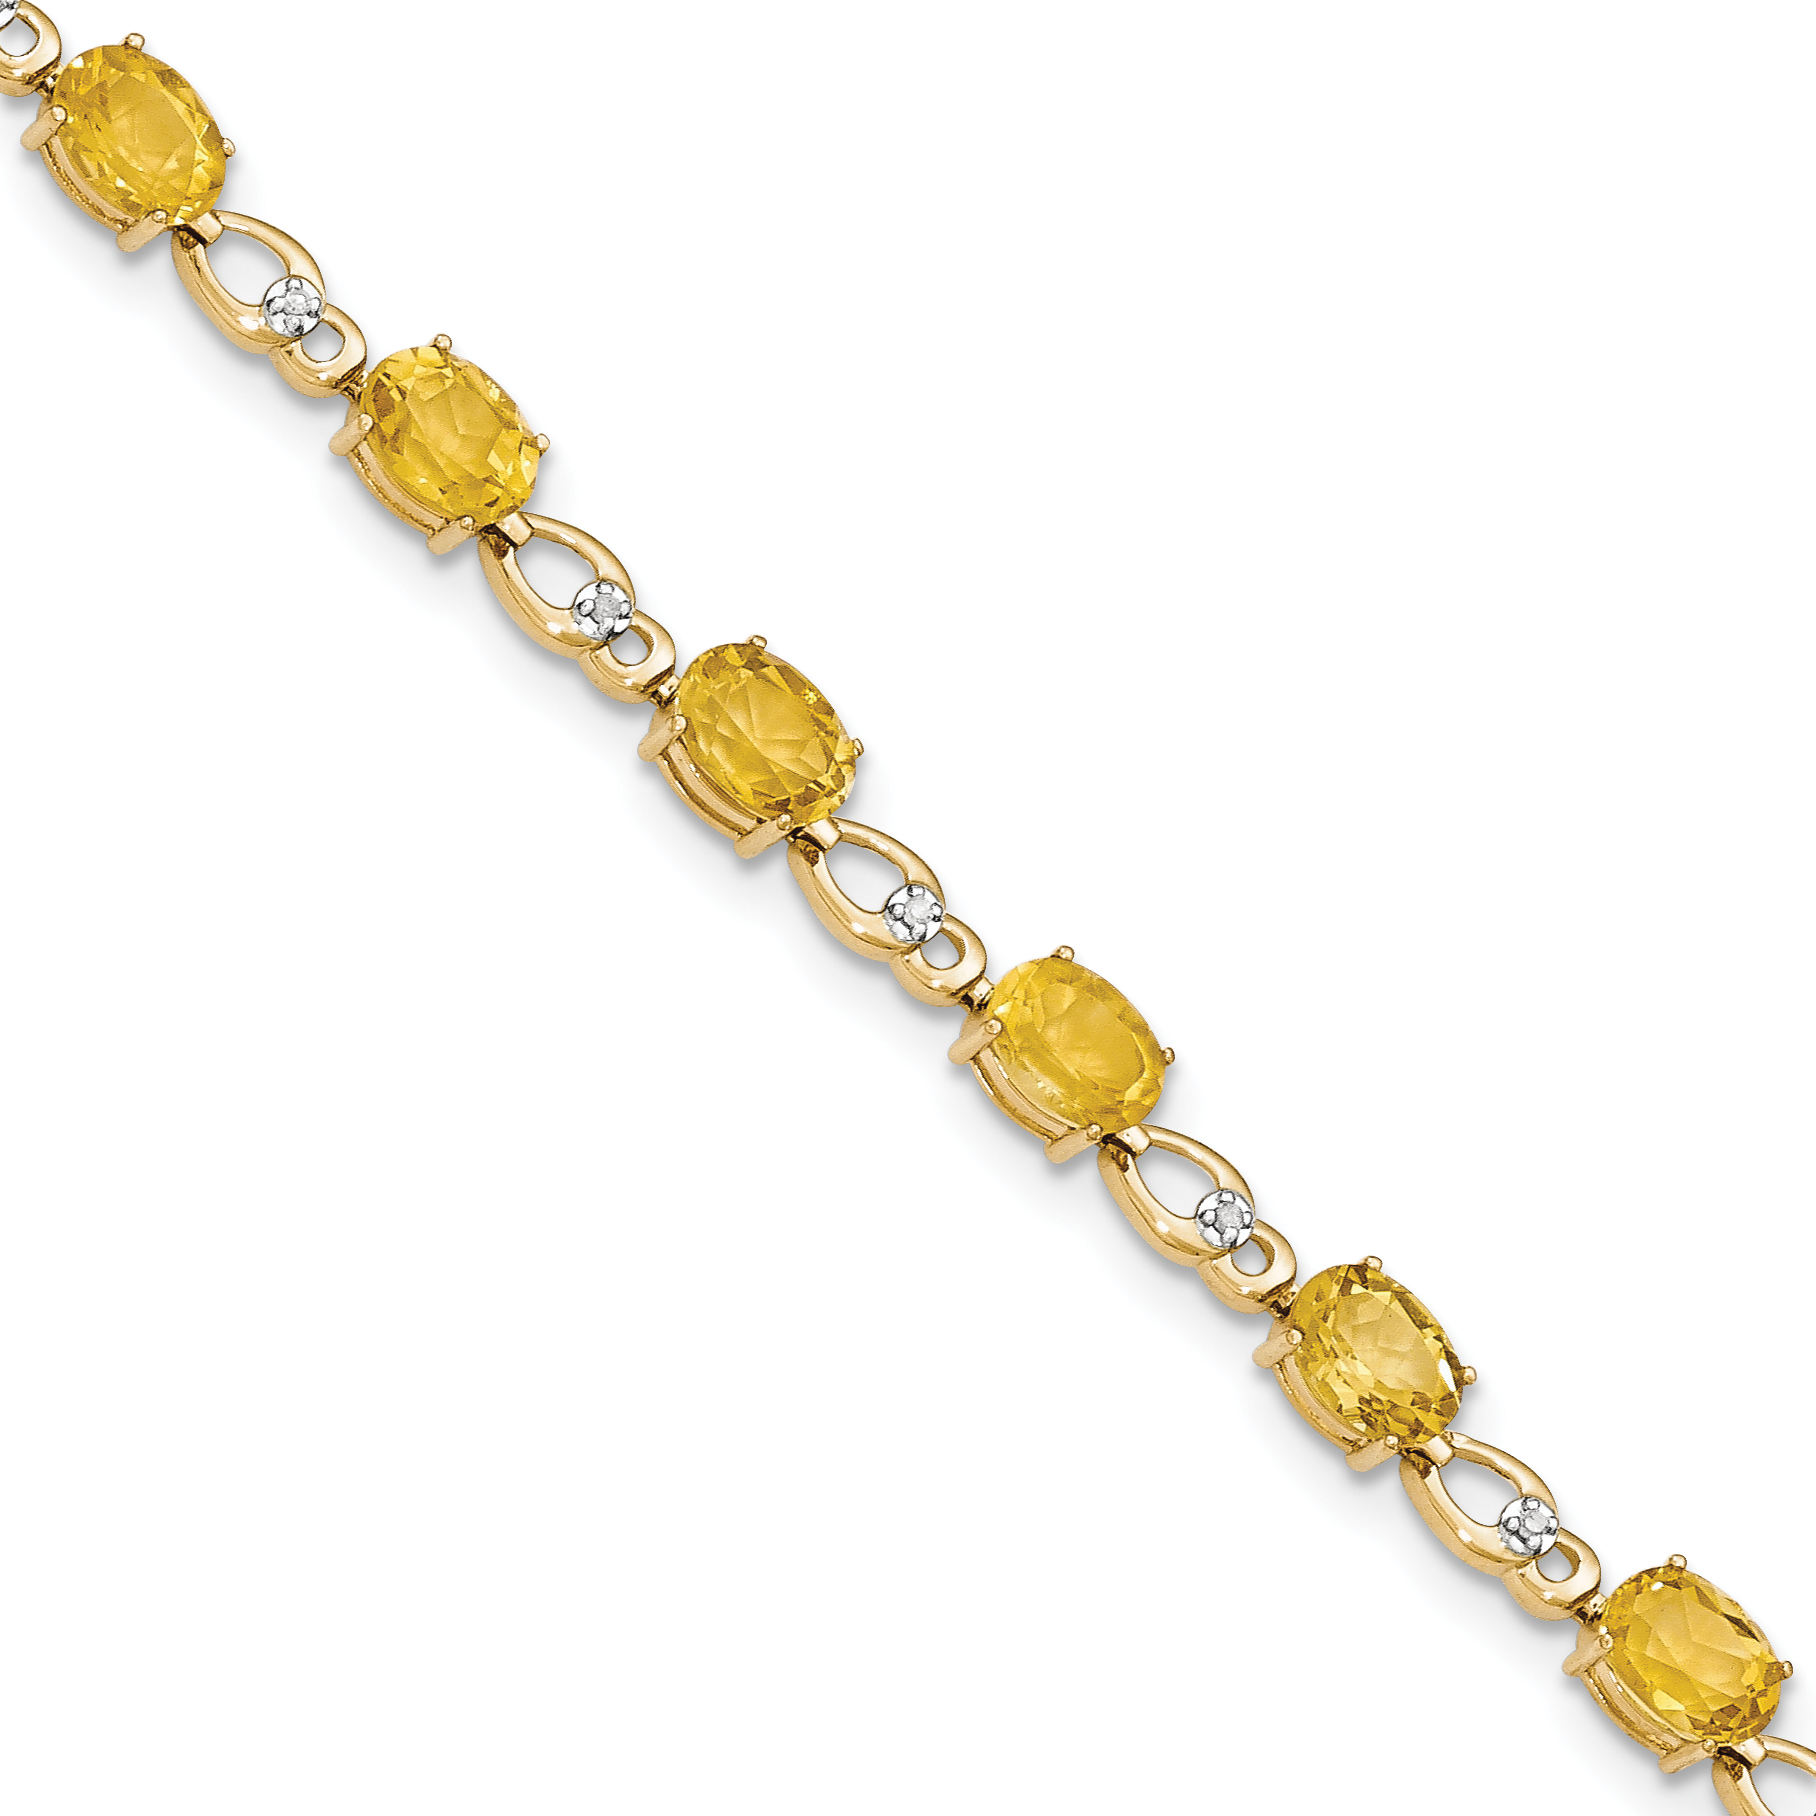 14k Citrine Diamond Bracelet by Core Gold